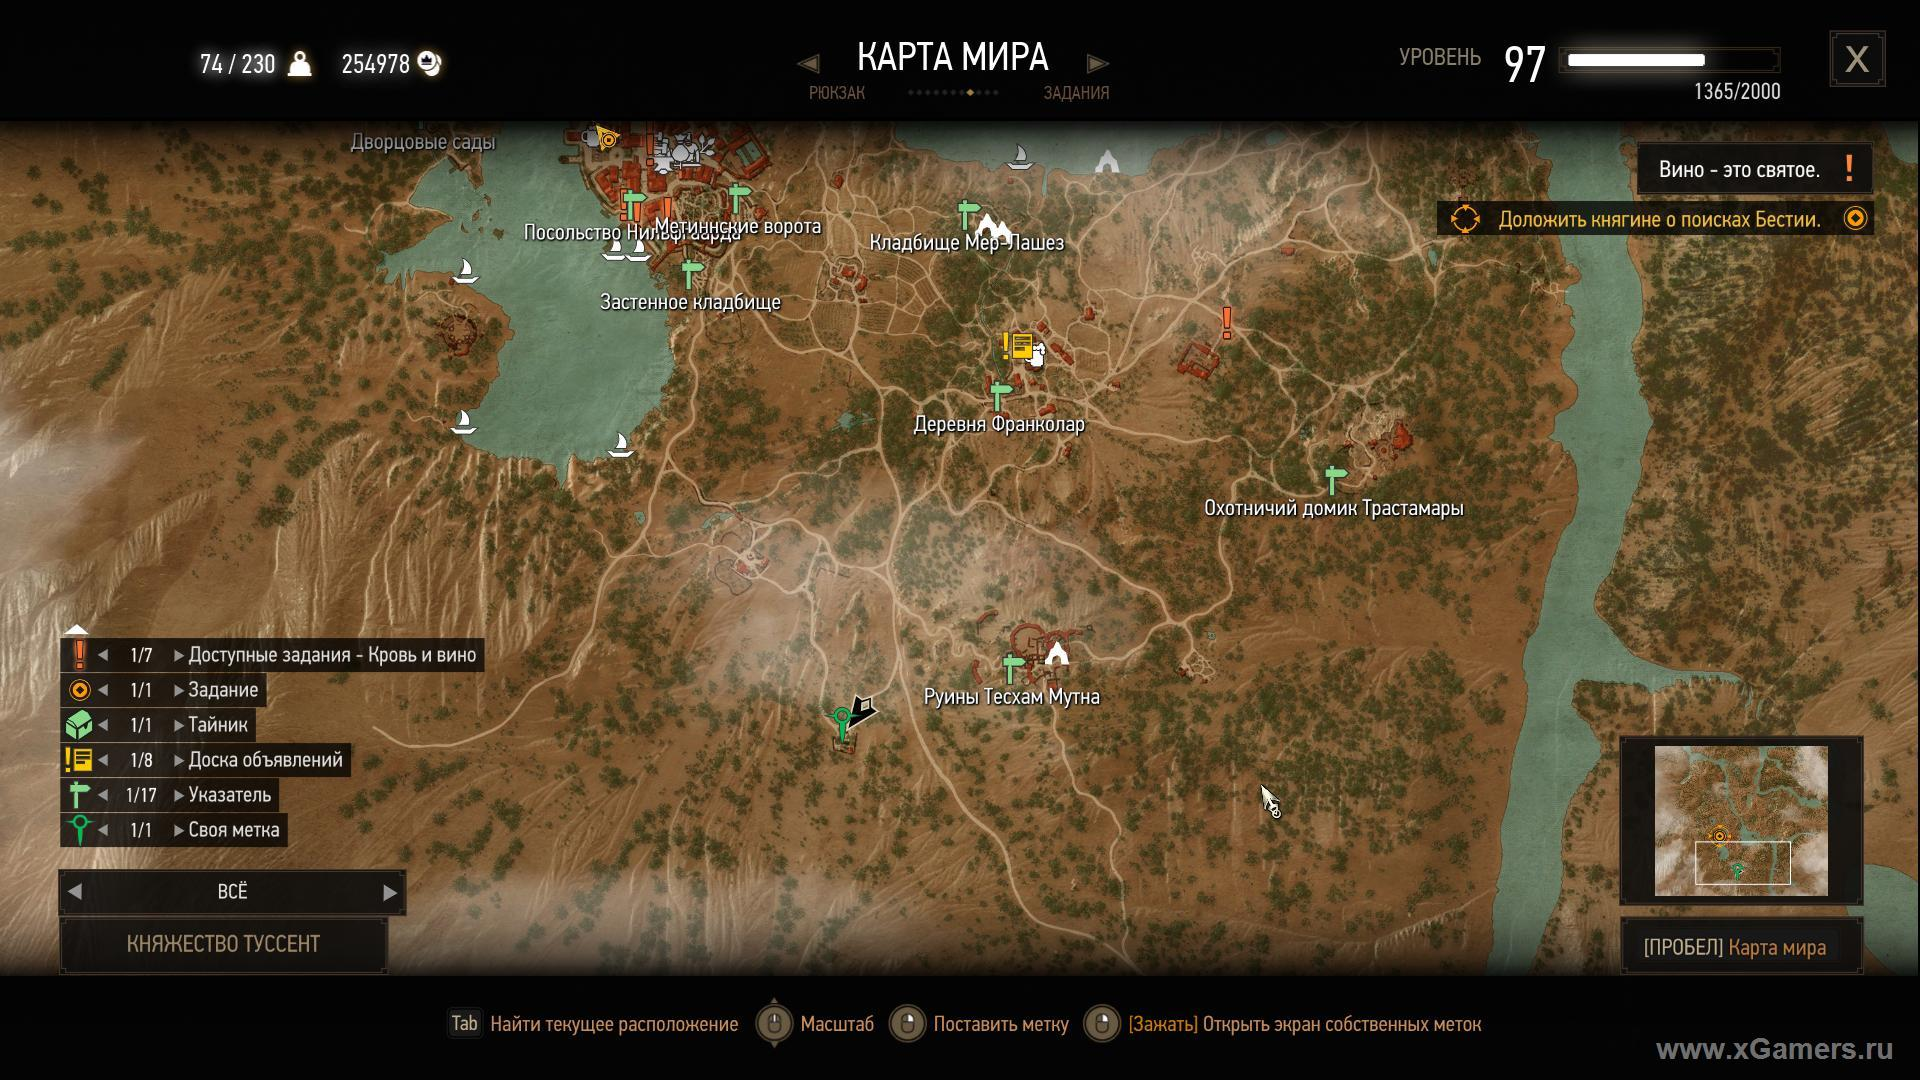 Witcher 3 quest (The Inconstant Gardener) on the map